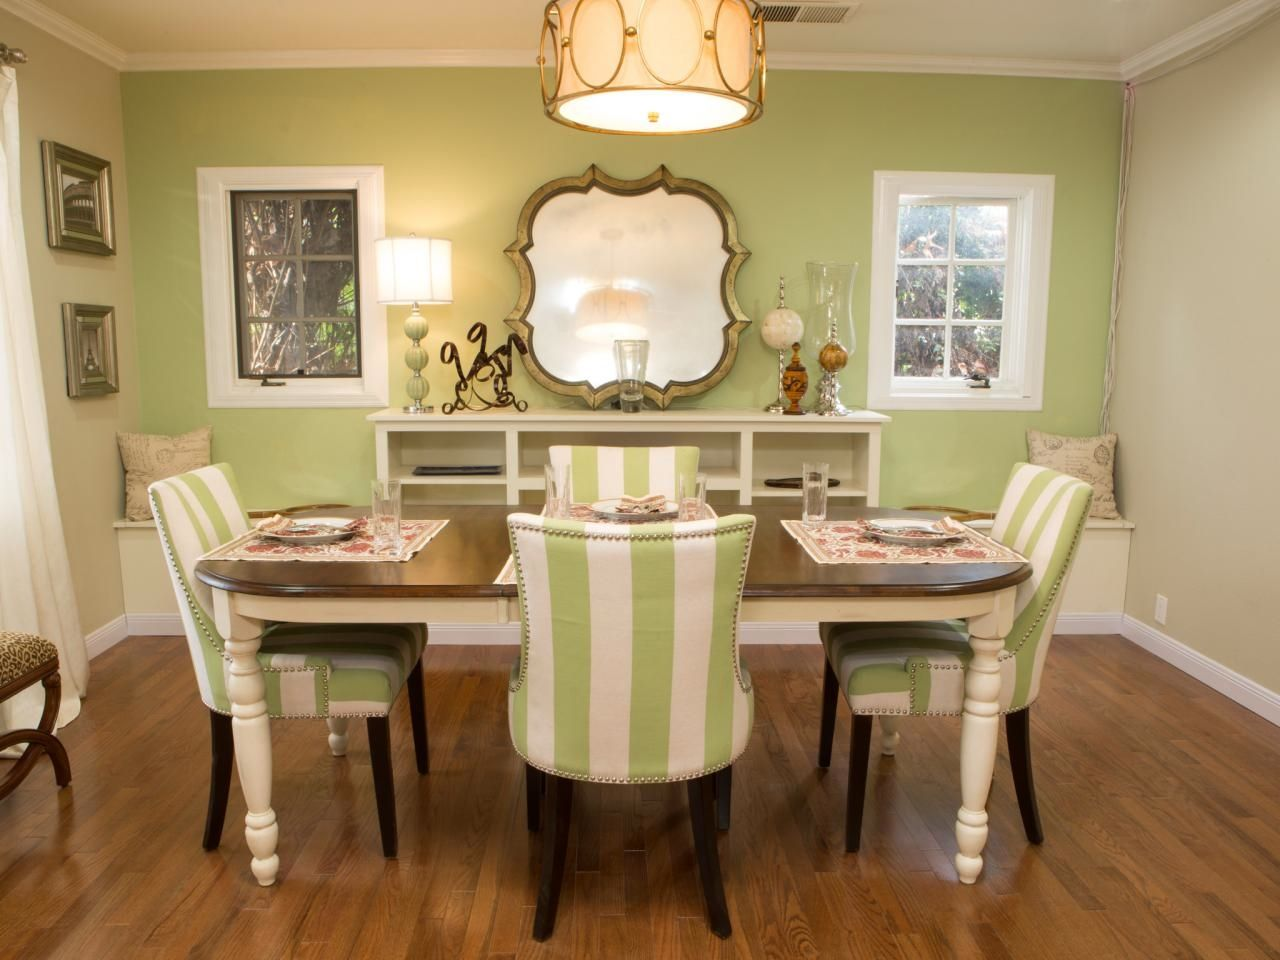 Dining Room Chairs Upholstery Material With Green Accent